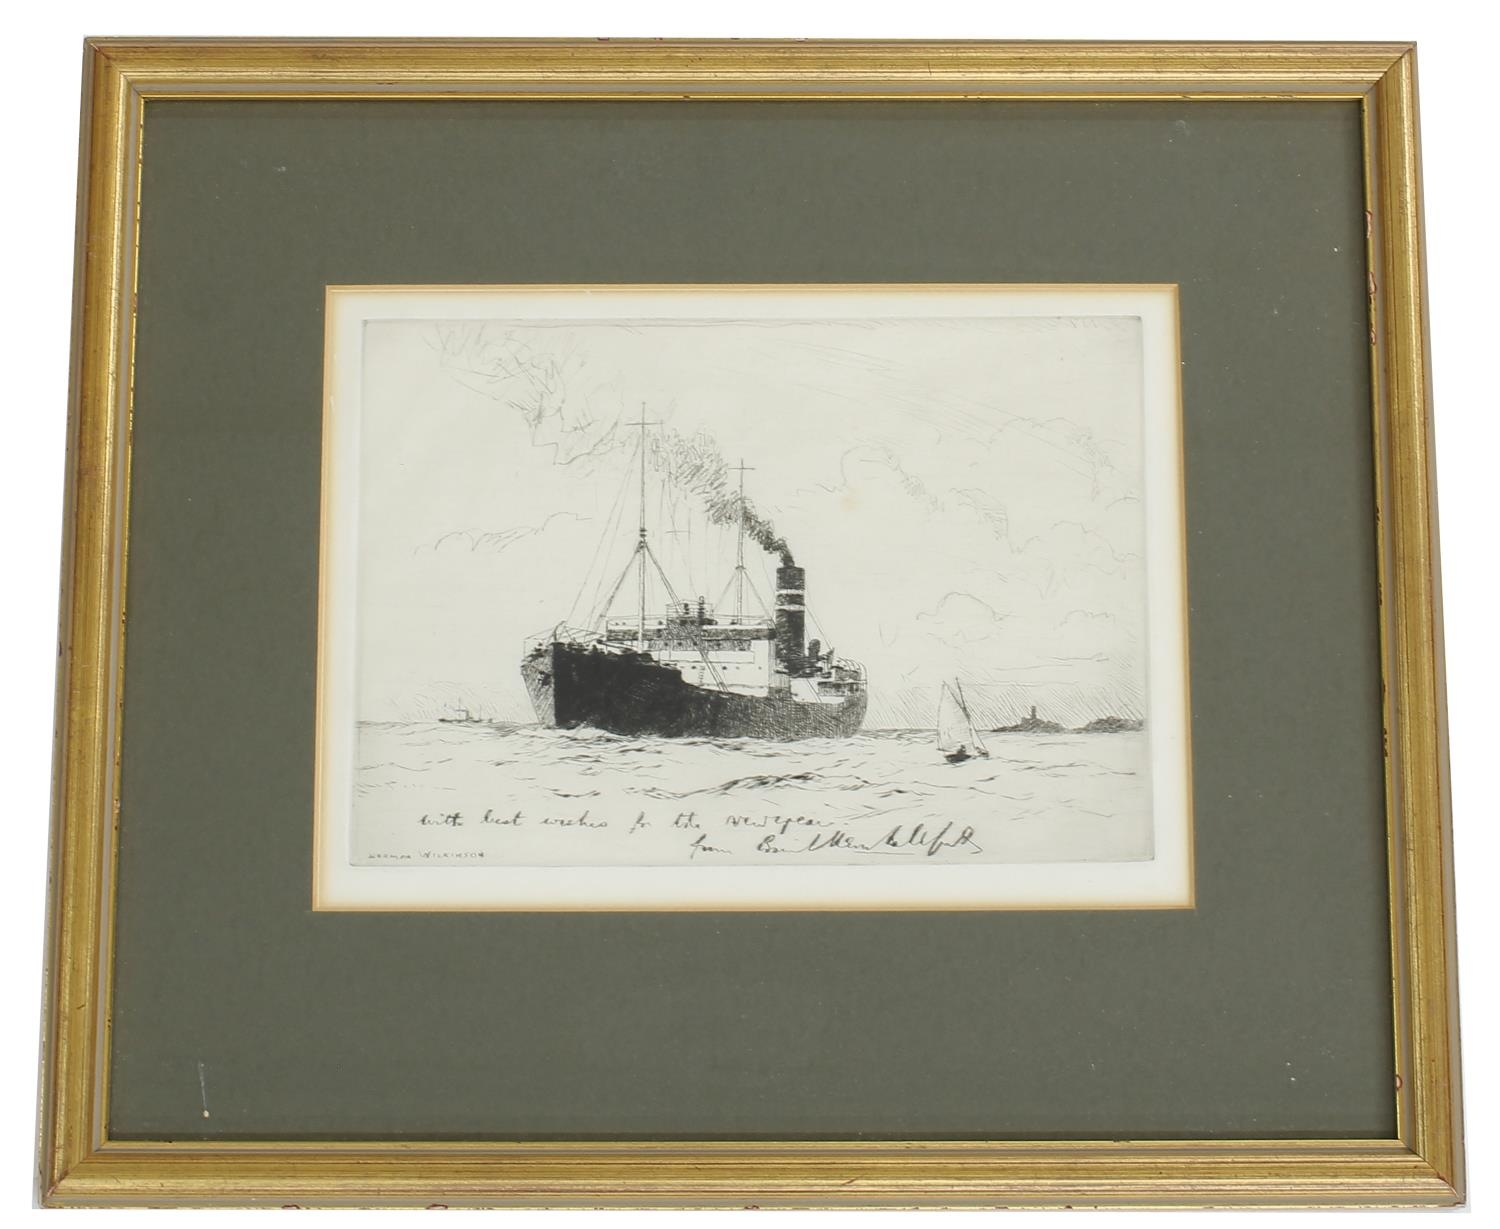 After Norman Wilkinson (1878-1971) -cargo ship leaving harbour, inscribed with the artist's name